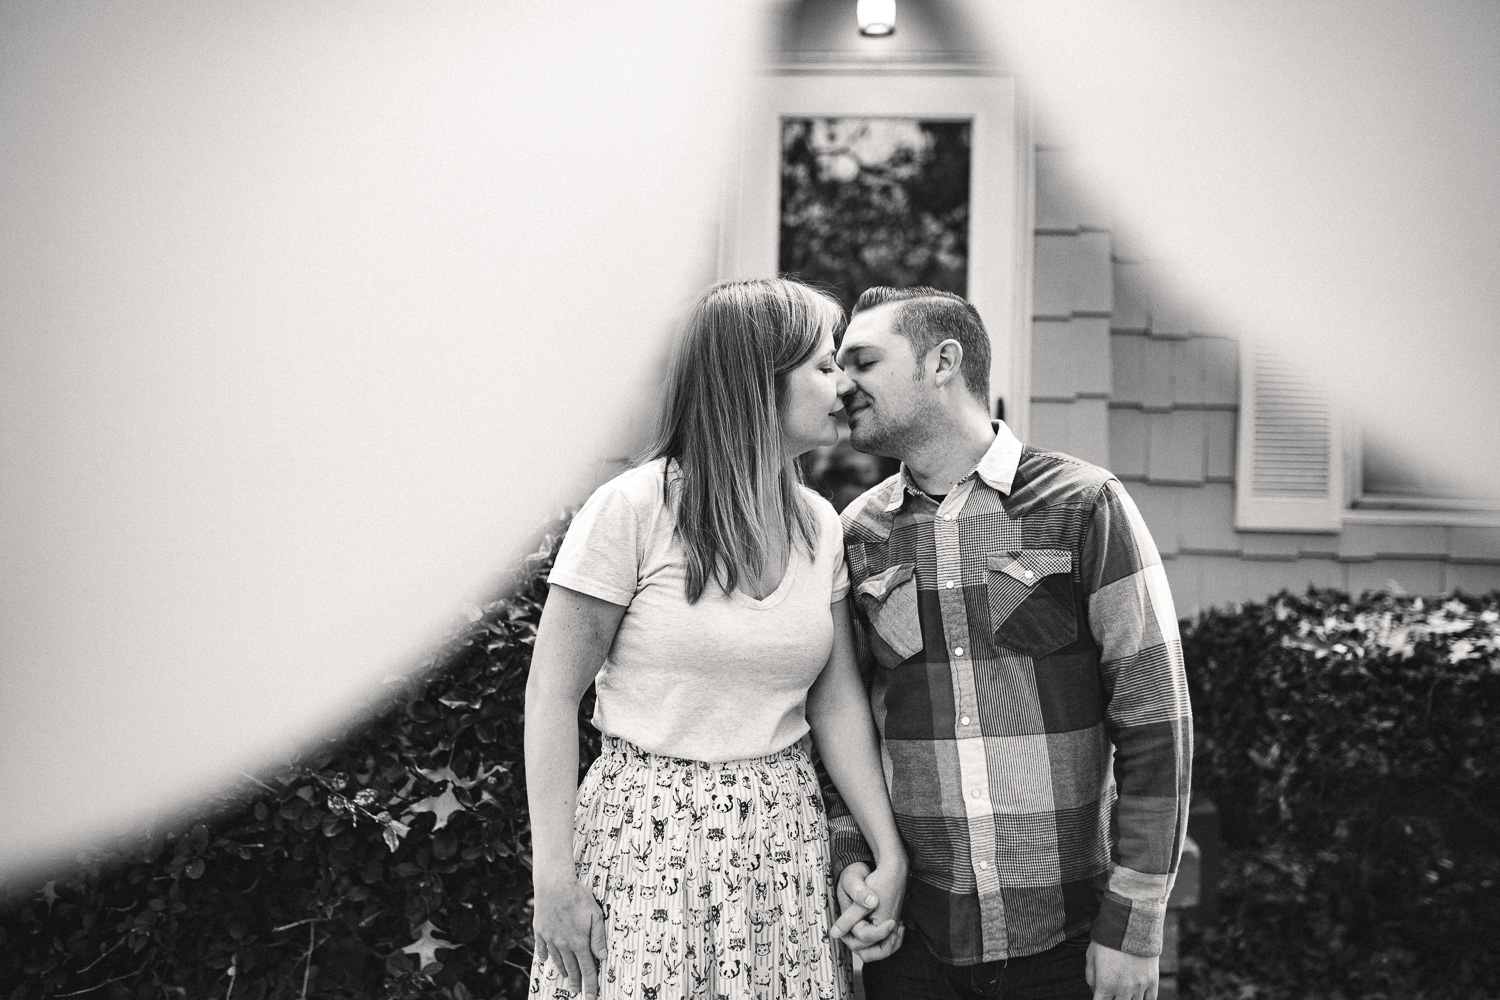 Kate_Bobby__Engagement_Session_Kansas_City_In_Home_Session_Autumn_Kelsey_Diane_Photography-0242.jpg